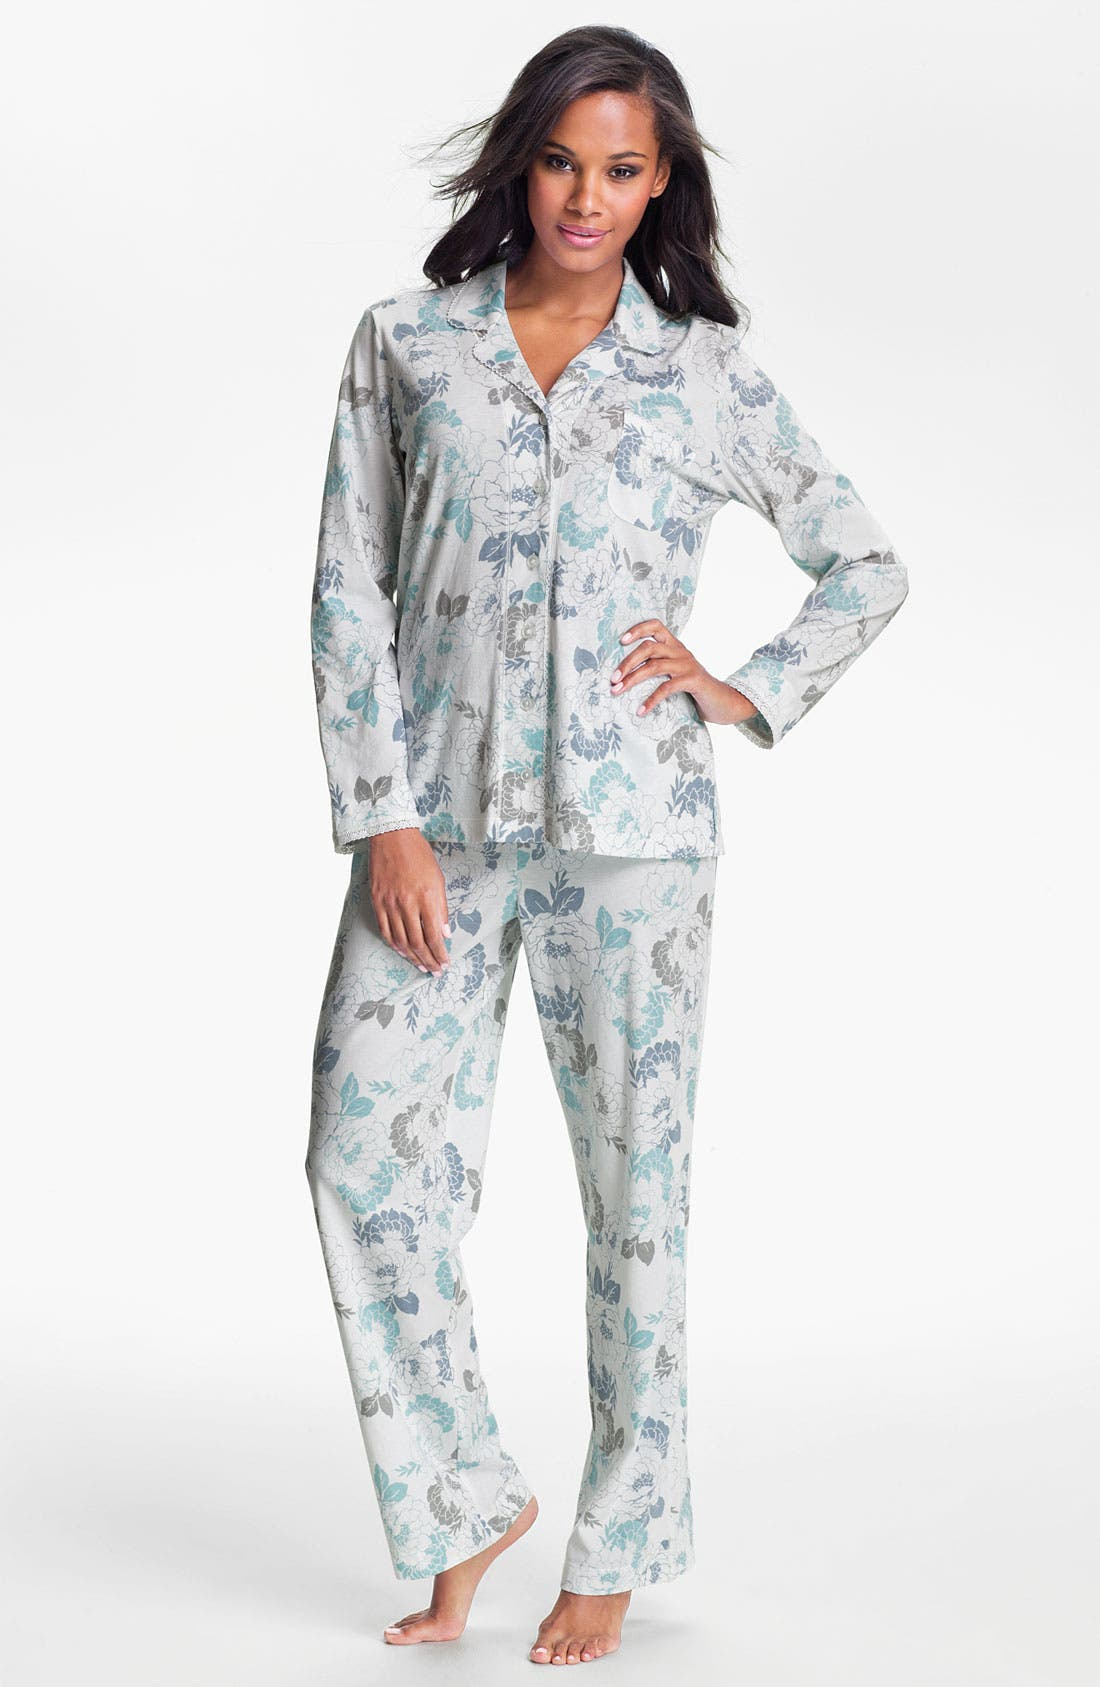 Alternate Image 1 Selected - Carole Hochman Designs 'Airbrushed Floral' Pajamas